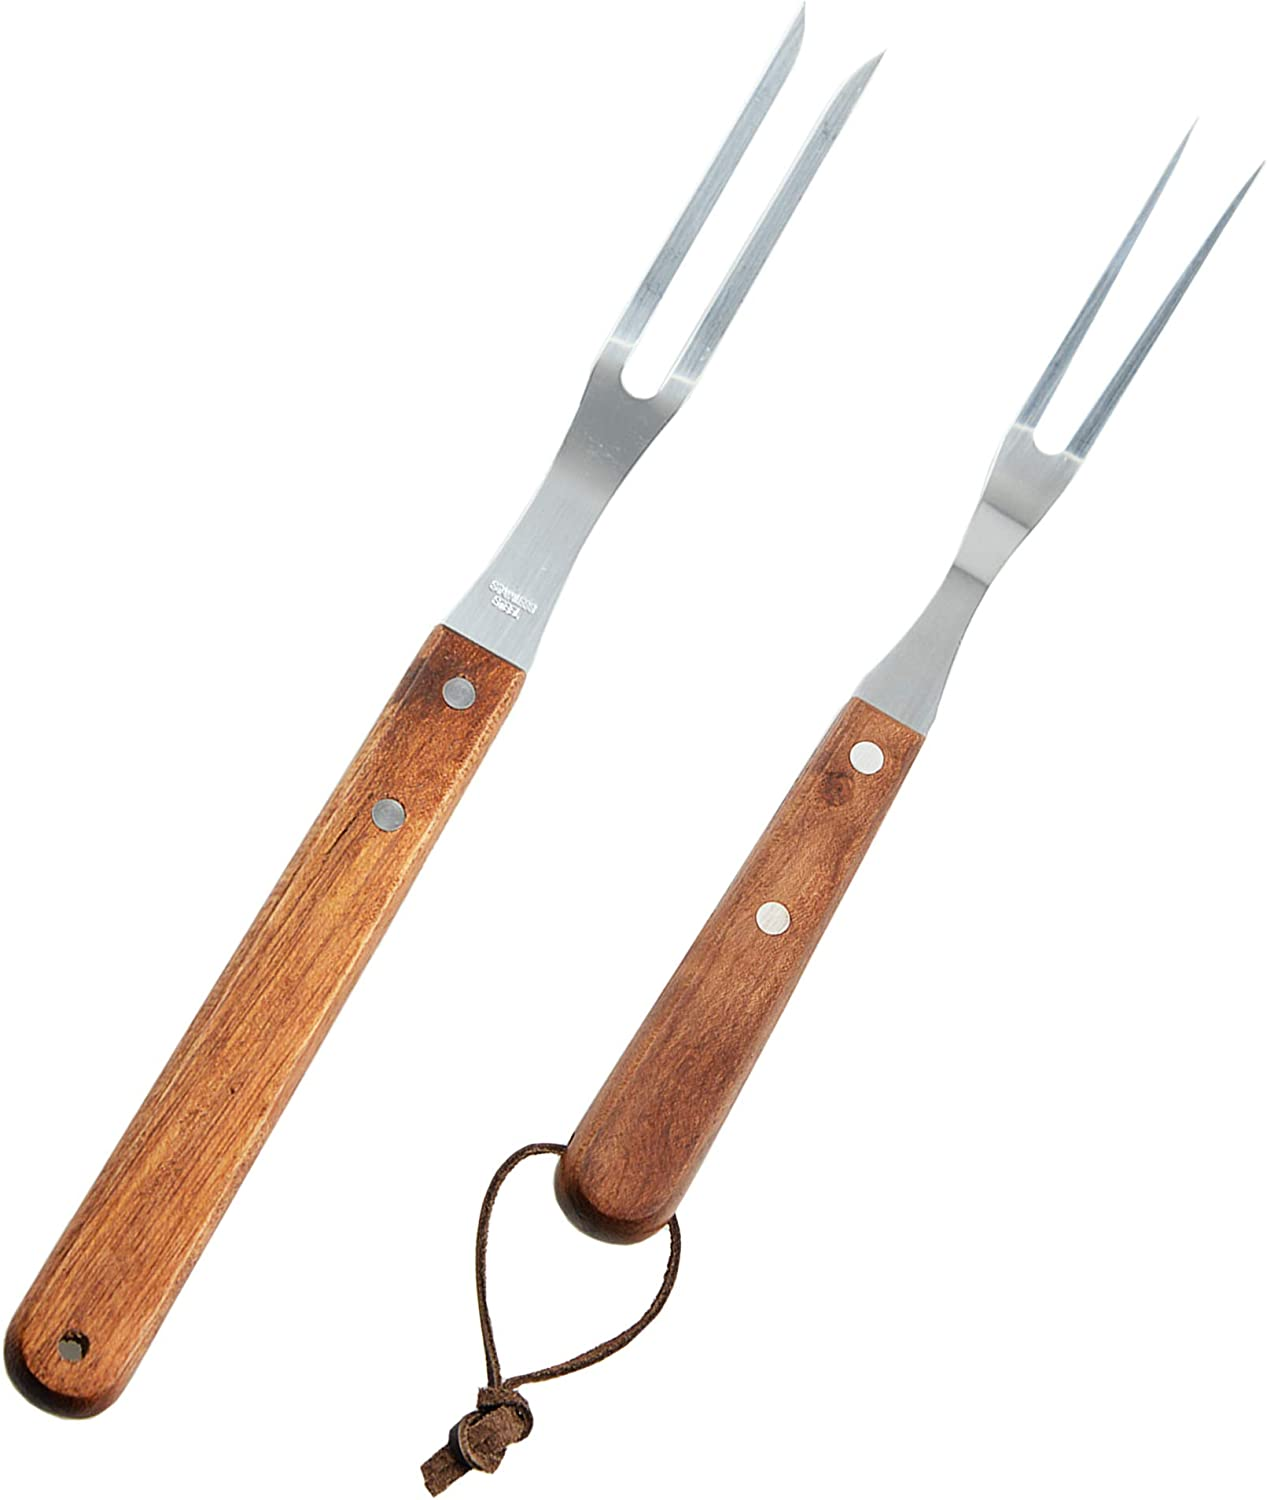 Fantasyon 2 Pack Meat Fork with Wooden Handle, Stainless Steel Meat Forged Carving Fork for Kitchen Roast (13 Inch, 10 Inch)